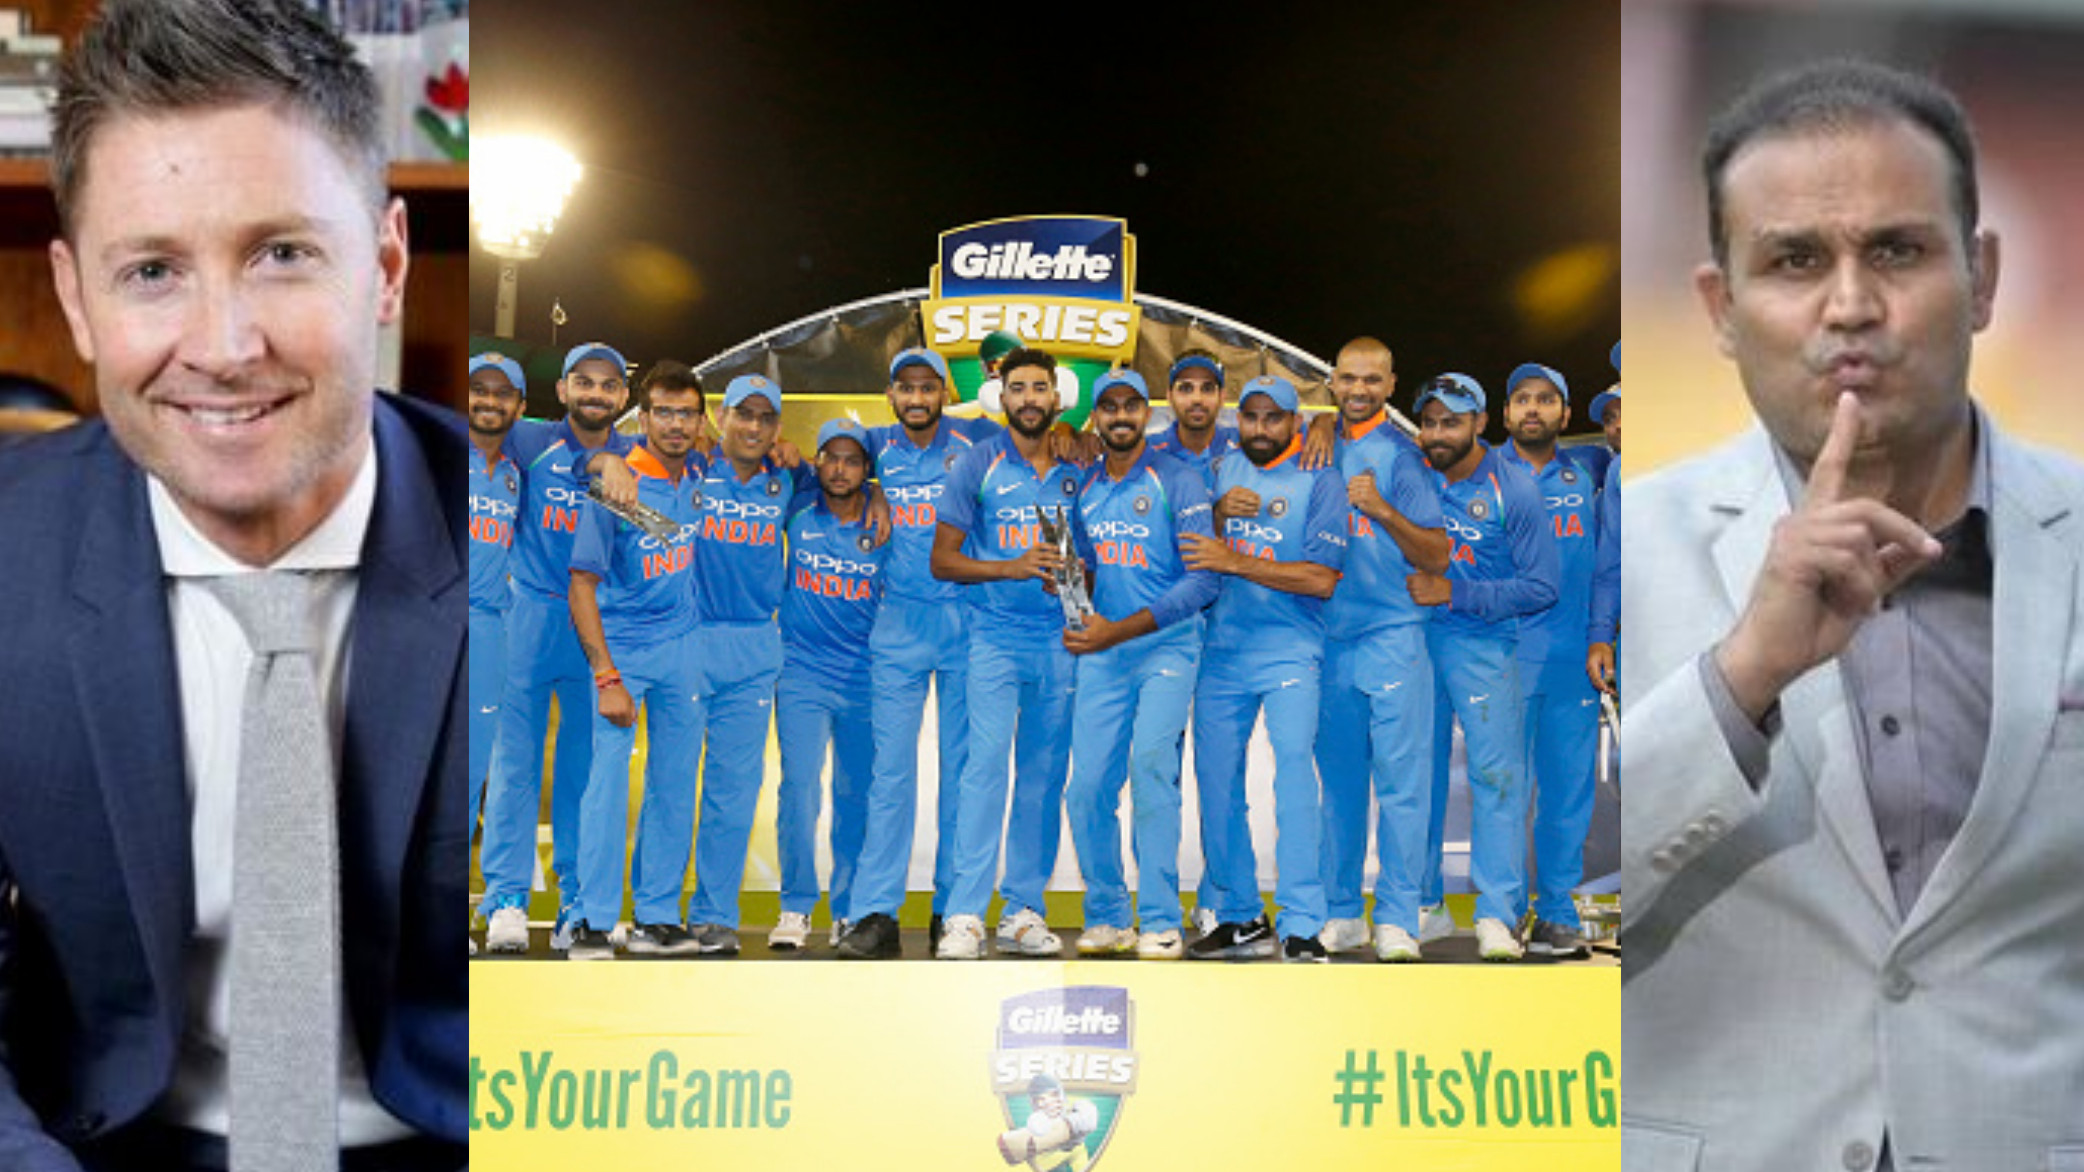 AUS v IND 2018-19: Cricket Fraternity applauds Team India for their first ever bilateral ODI series victory in Australia